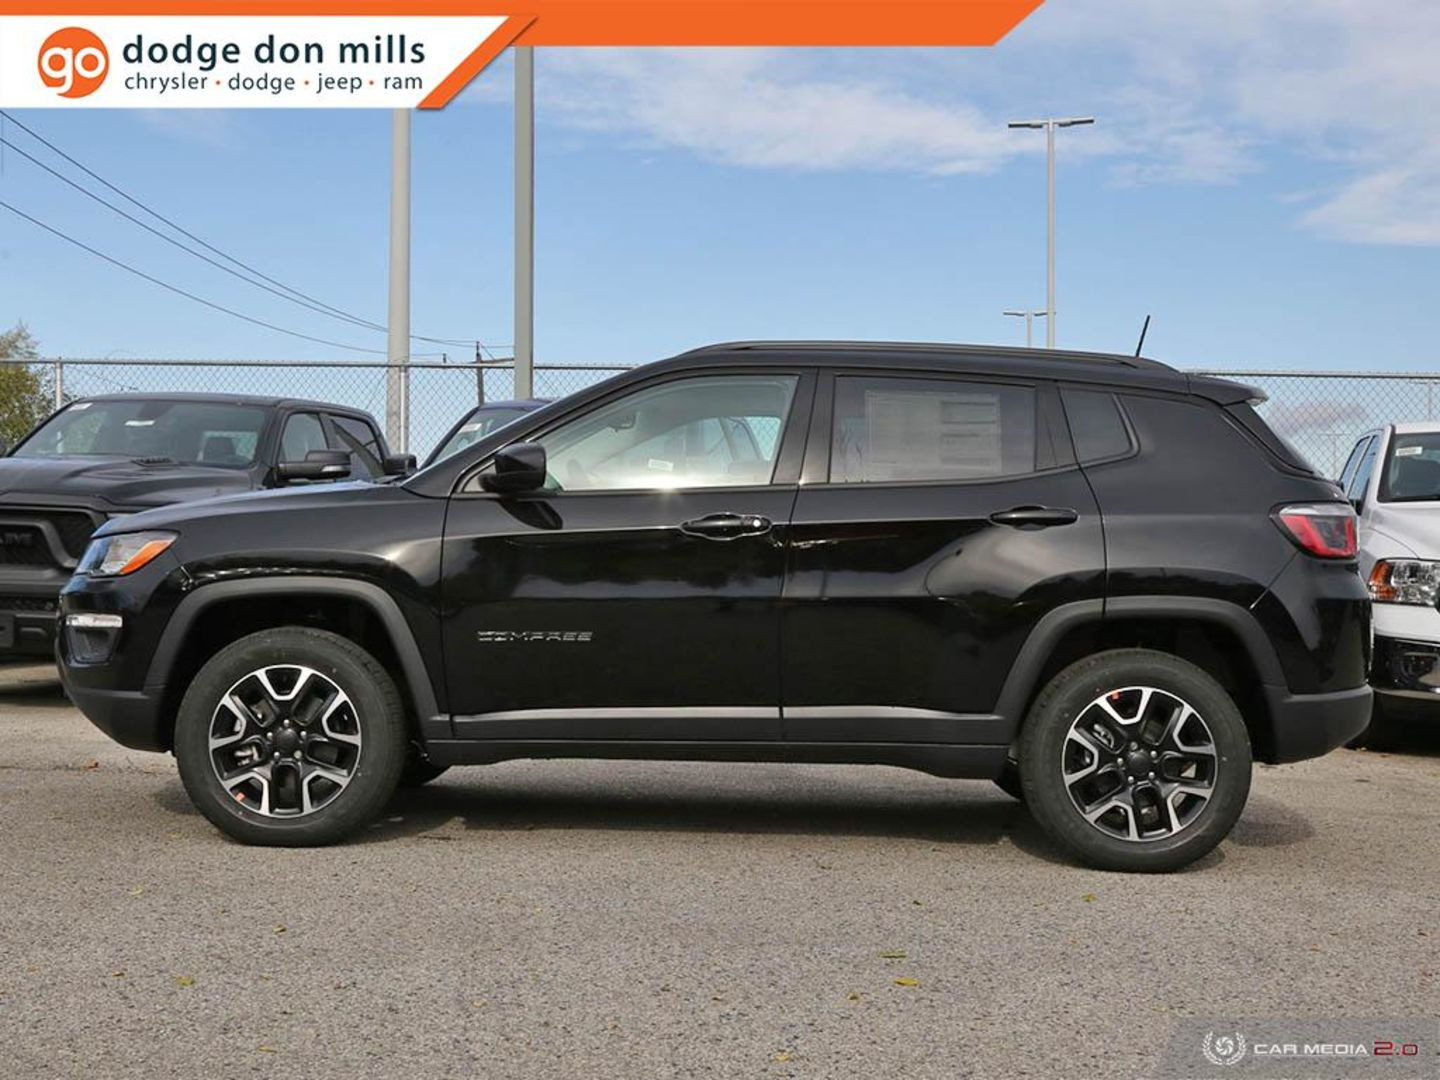 2020 Jeep Compass Upland Edition for sale in Toronto, Ontario